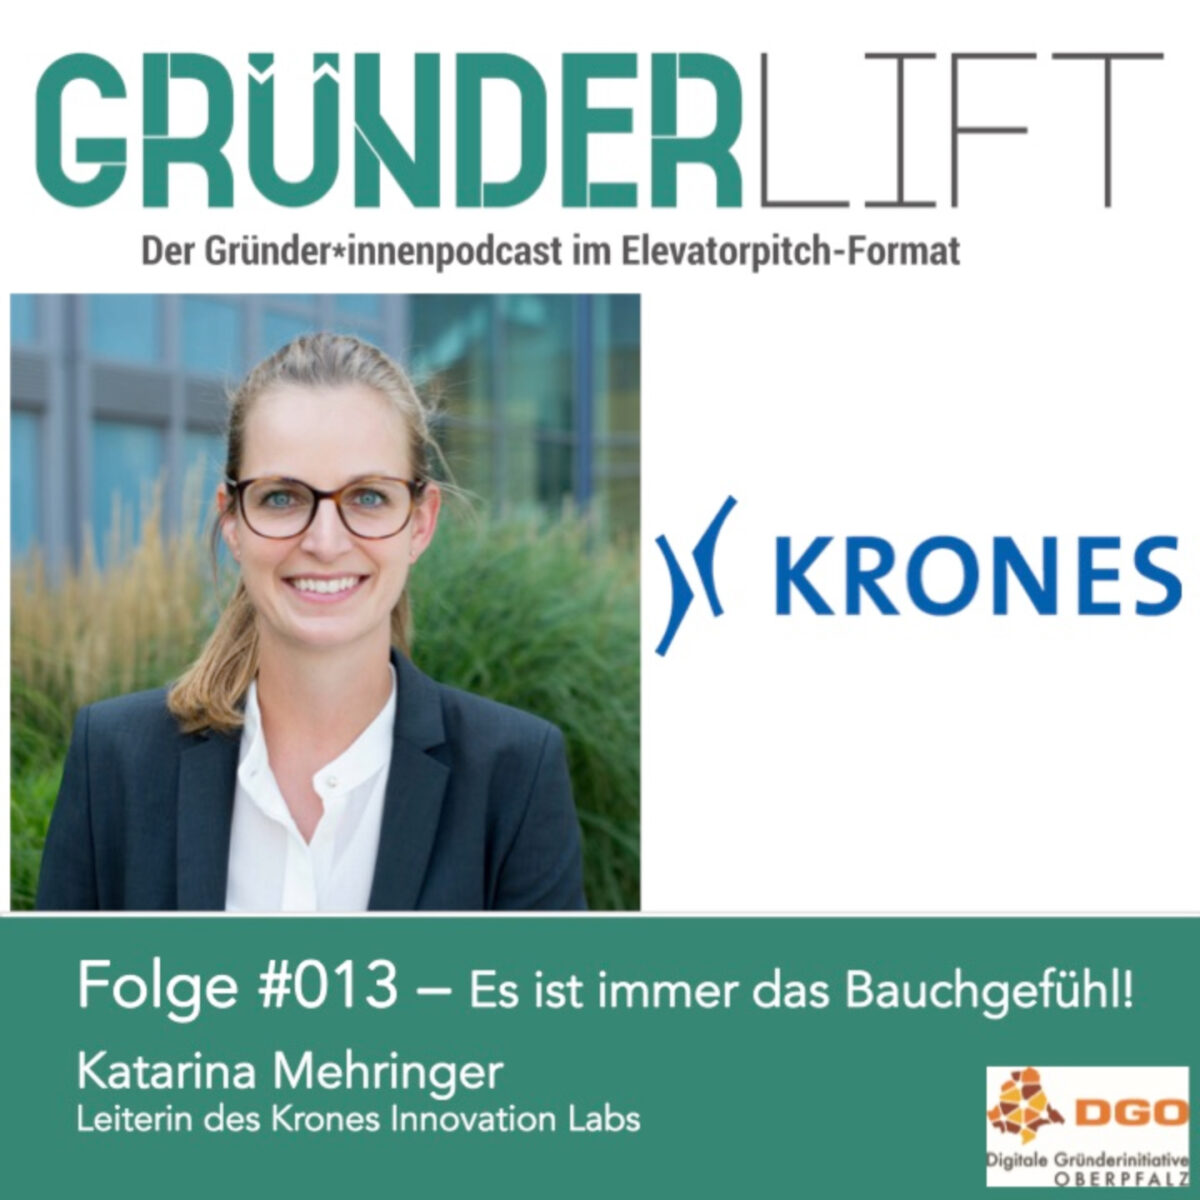 Katarina Mehringer Krones Innovation Lab